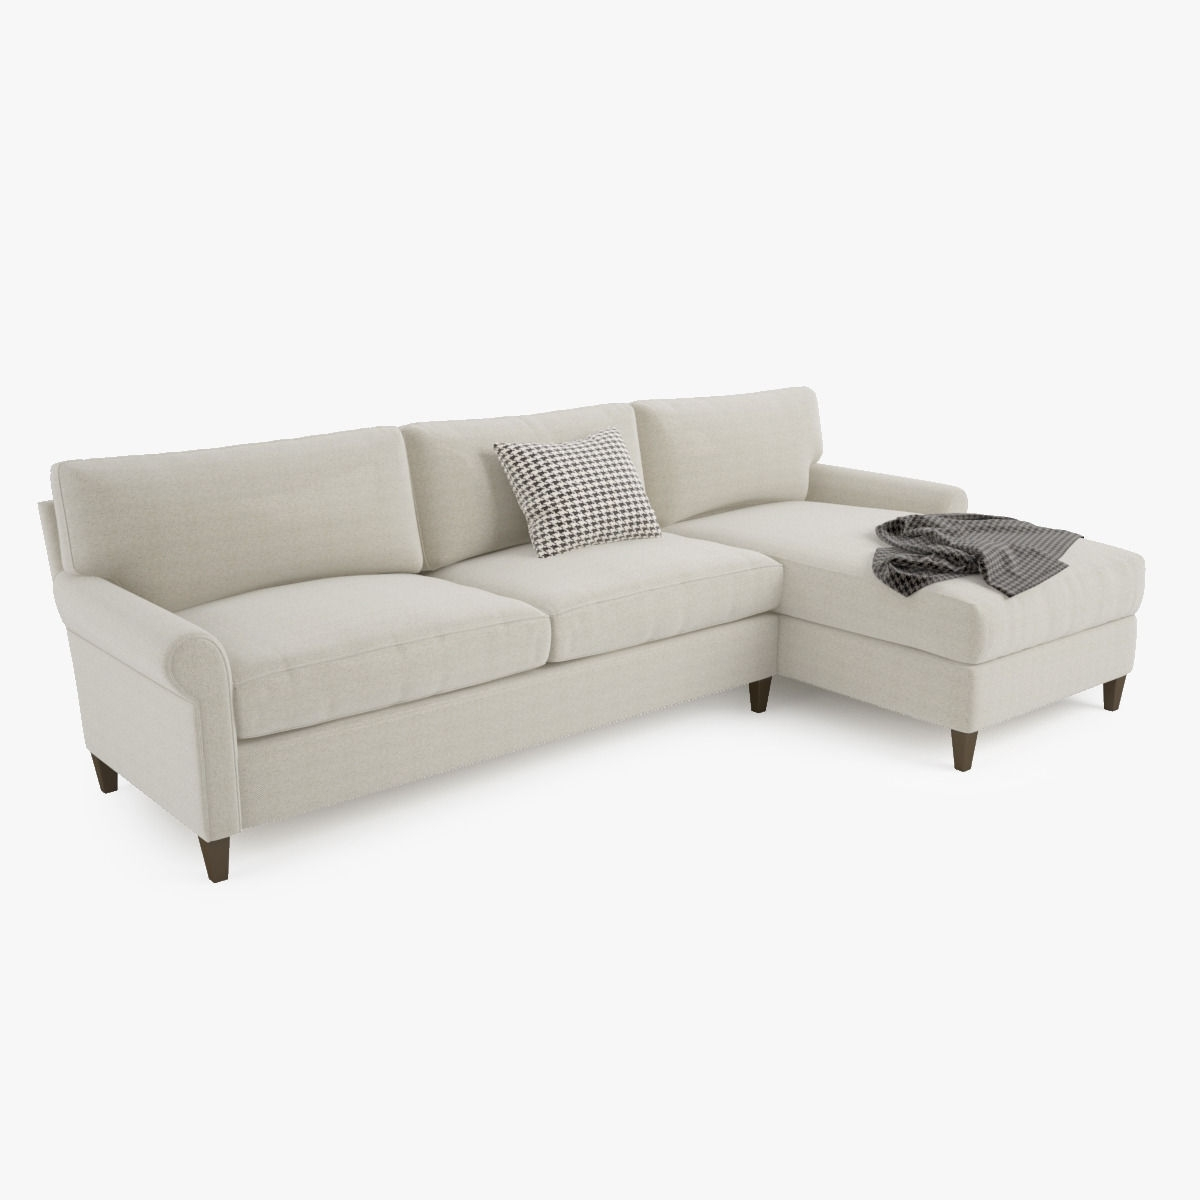 Preferred Crate And Barrel Montclair 2 Piece Sectional Sofa 3D Model Max Obj For Crate And Barrel Chaises (View 14 of 15)